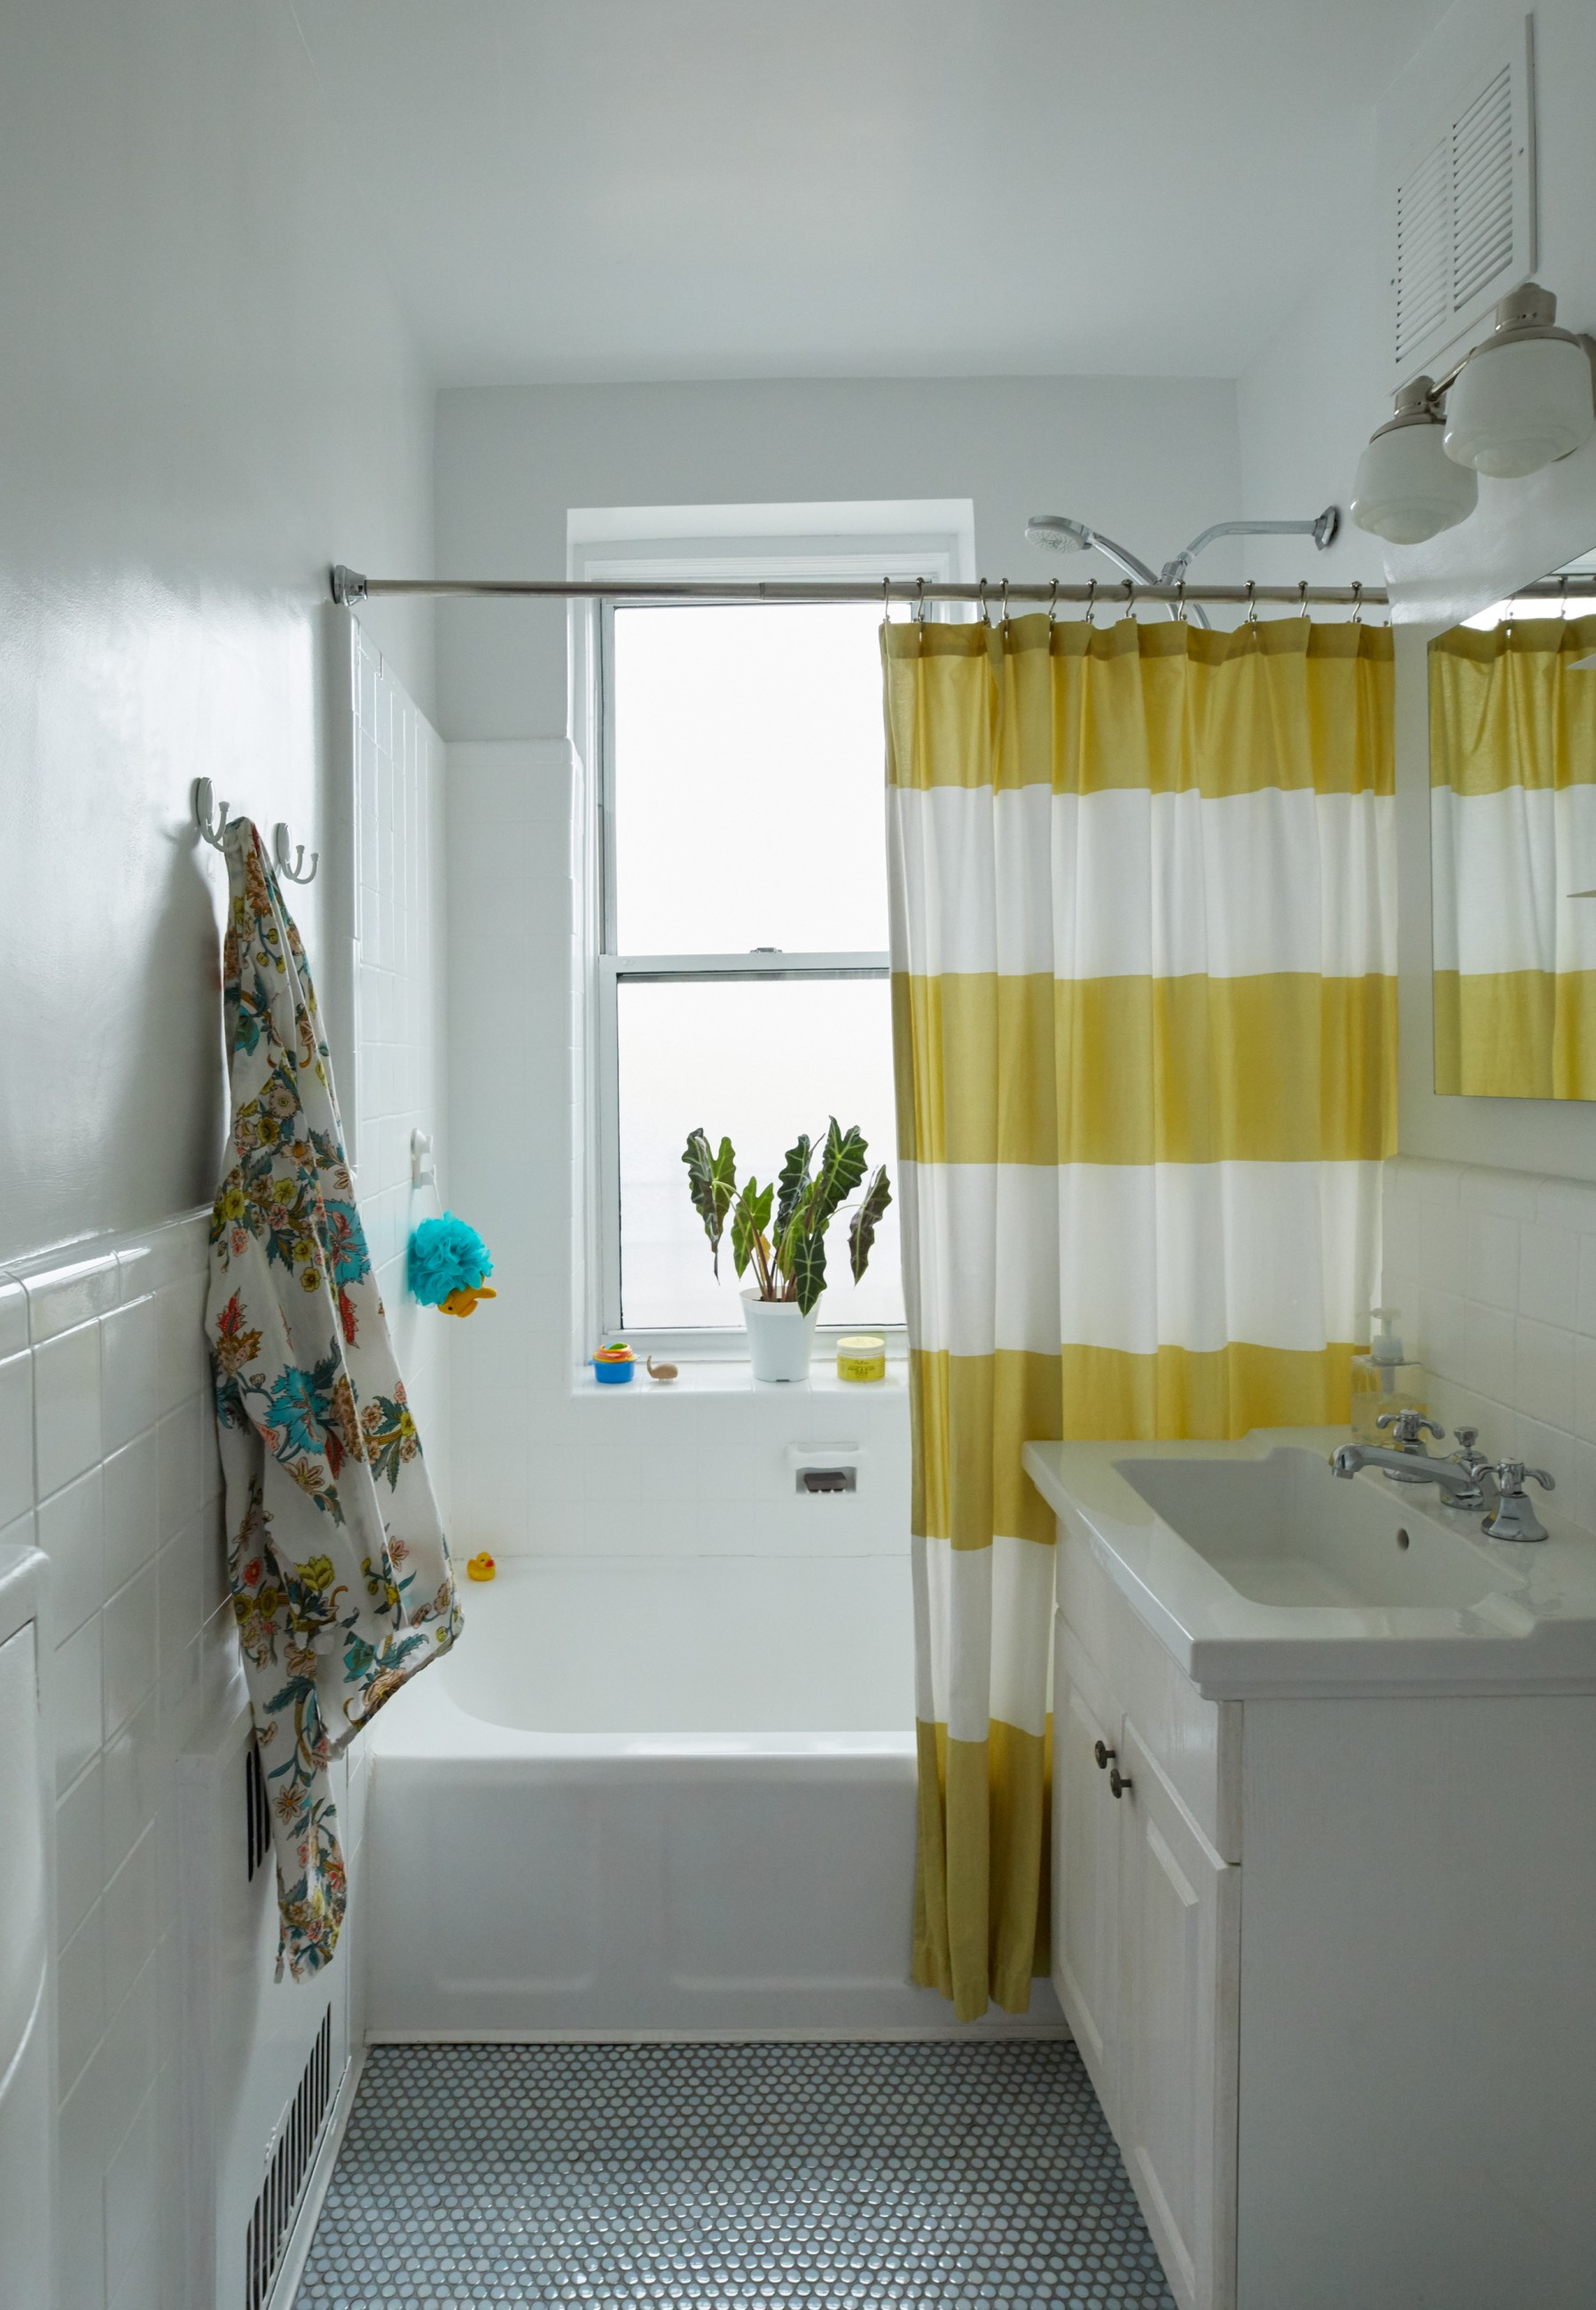 NYC Apartment Bathroom Renovation Veterans On What They Learned - Bathroom contractors nyc